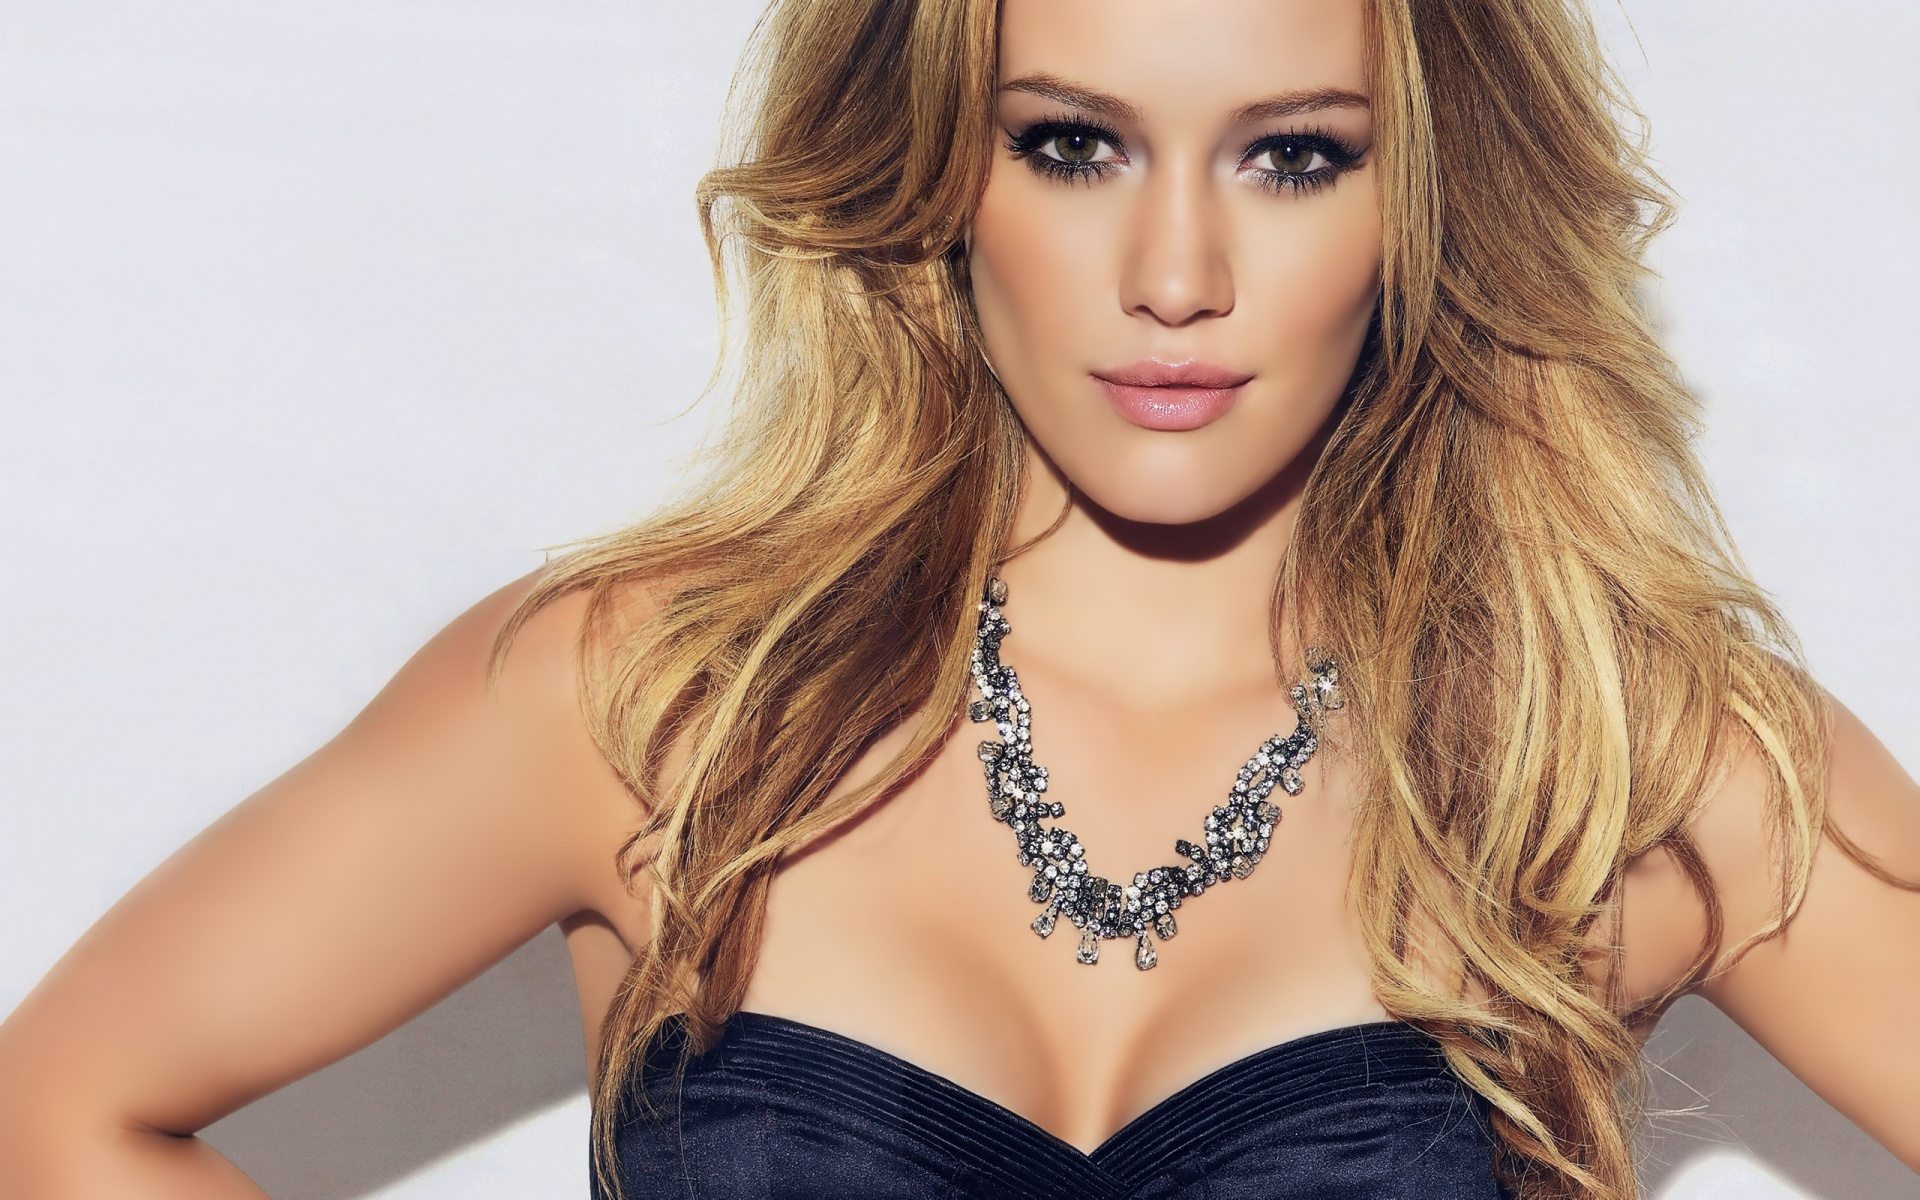 Gorgeous Hilary Duff 42257 1920x1200 px